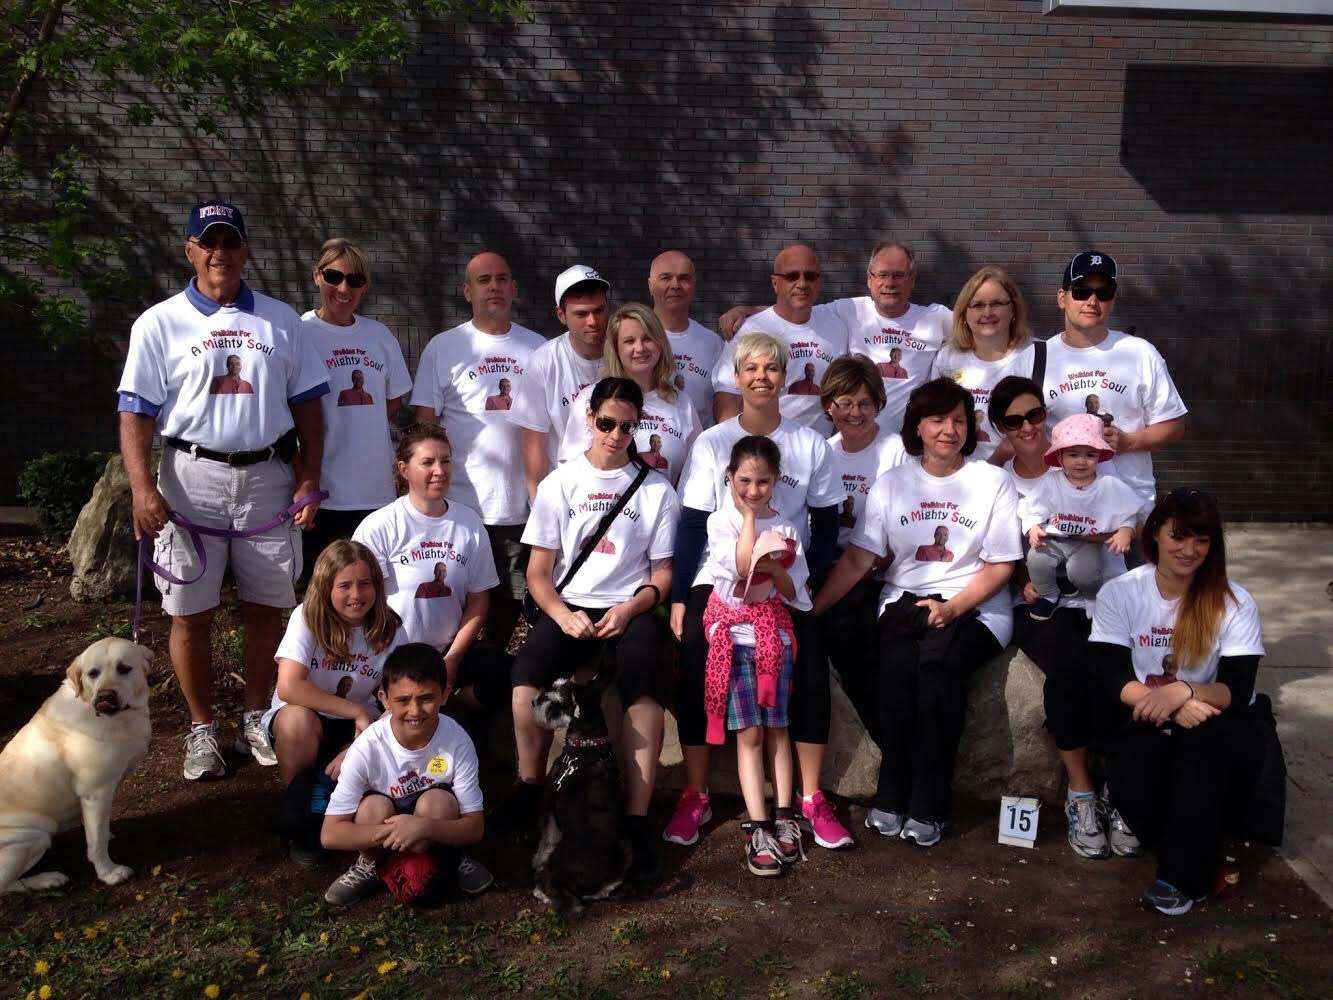 Stephanie and her family pose for a picture at the MS Walk event